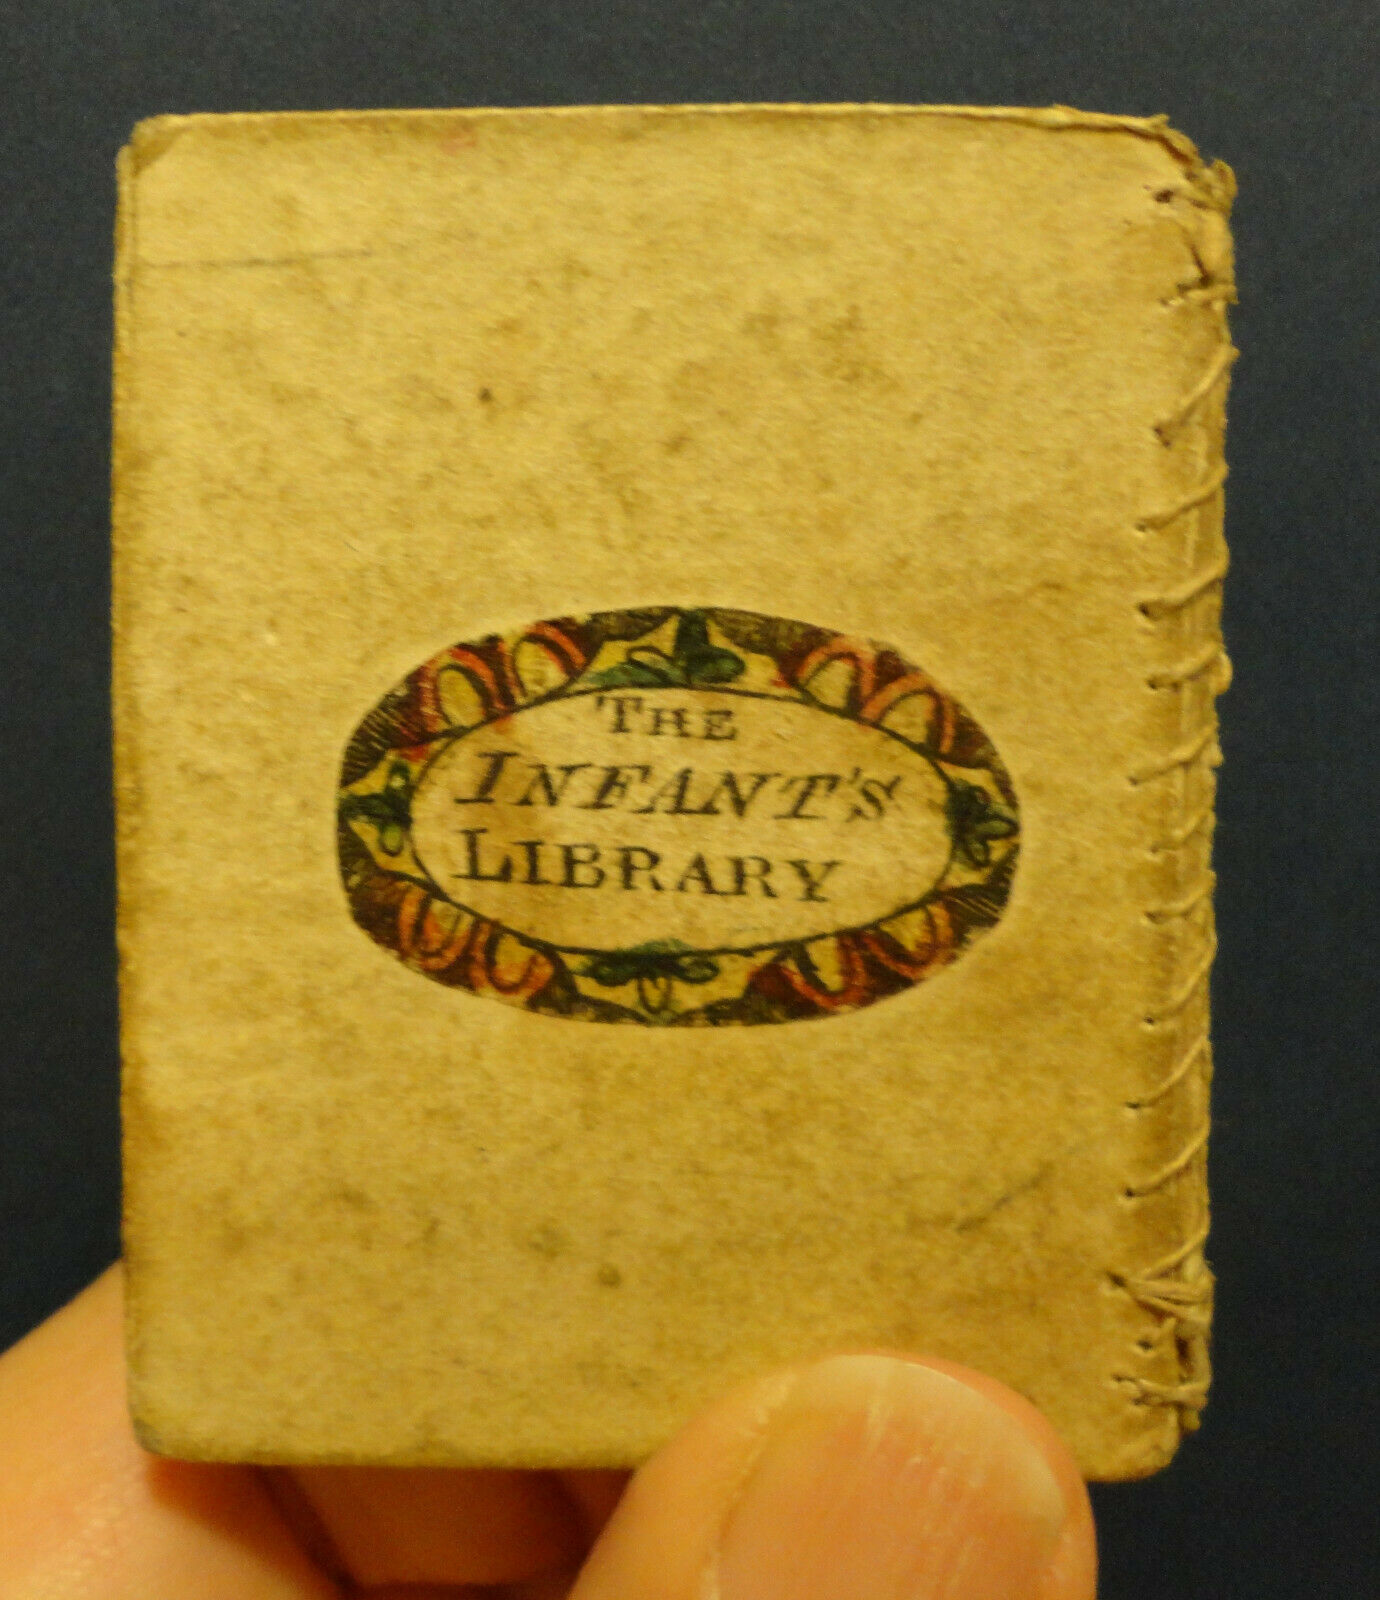 "RARE ANTIQUARIAN MINIATURE BOOK ""INFANT'S LIBRARY BOOK 11"" JOHN MARSHALL c. 1800 